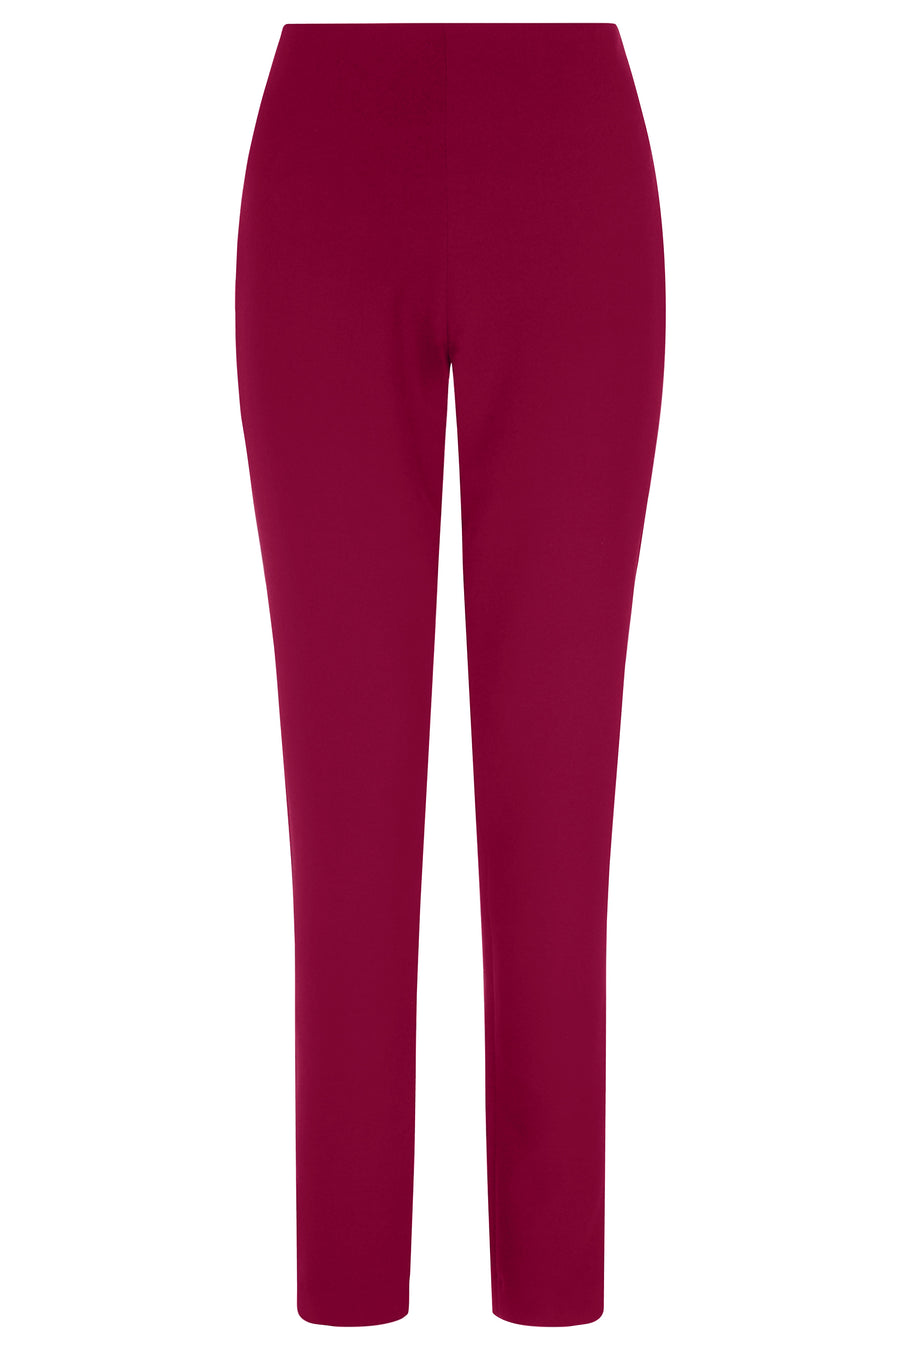 Brunswick Rosehip Trousers